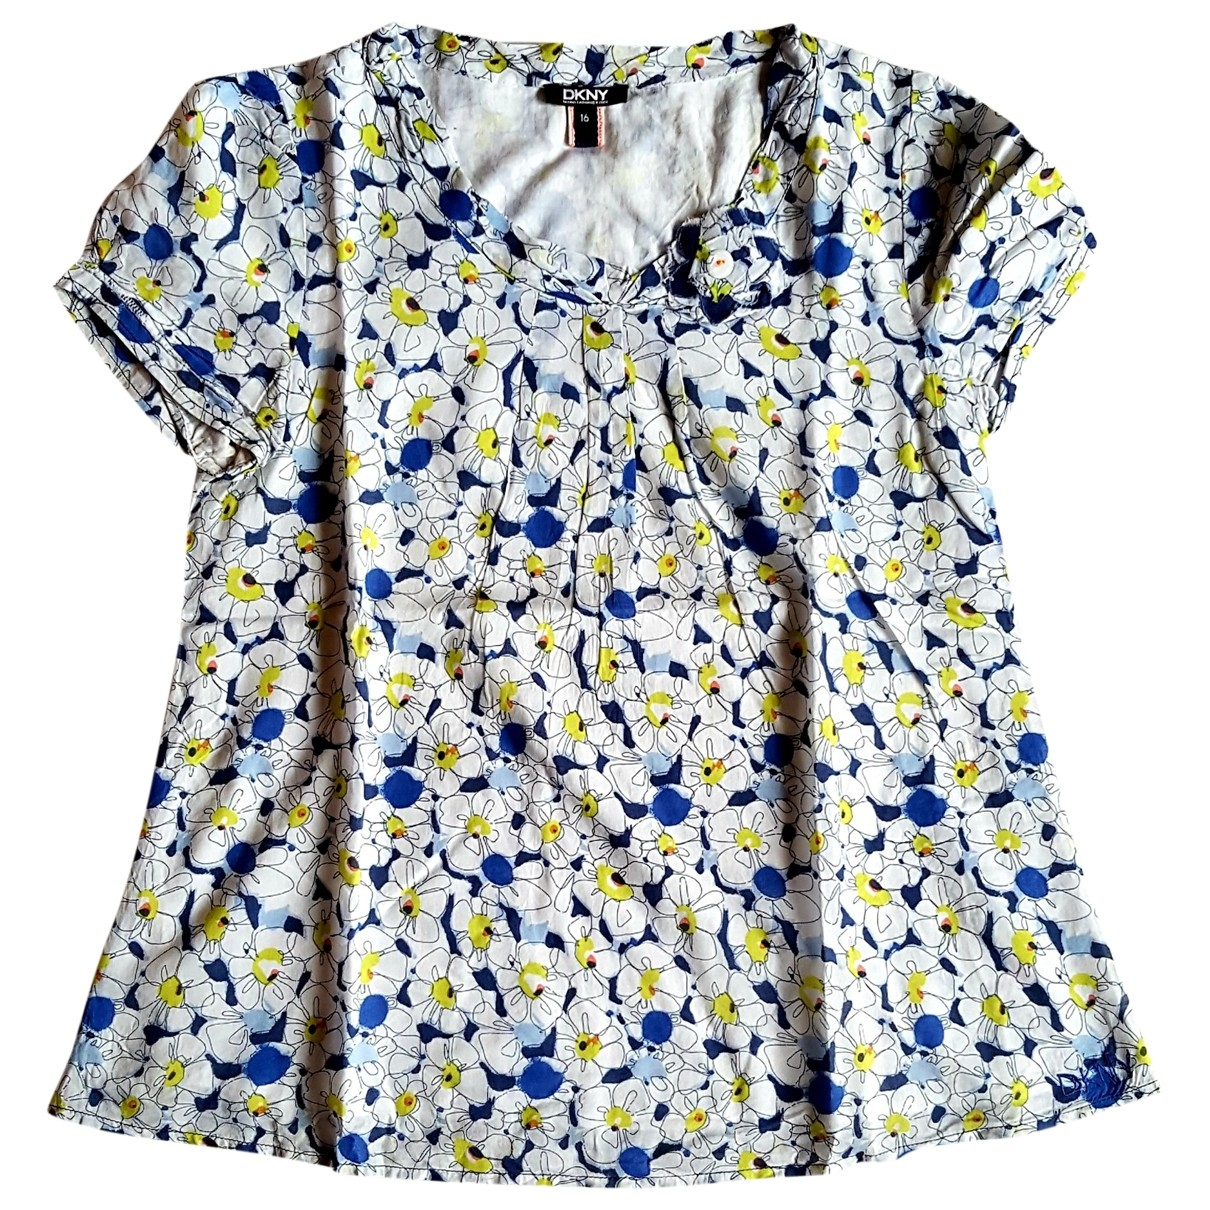 Dkny \N Blue Cotton  top for Kids 16 years - M FR